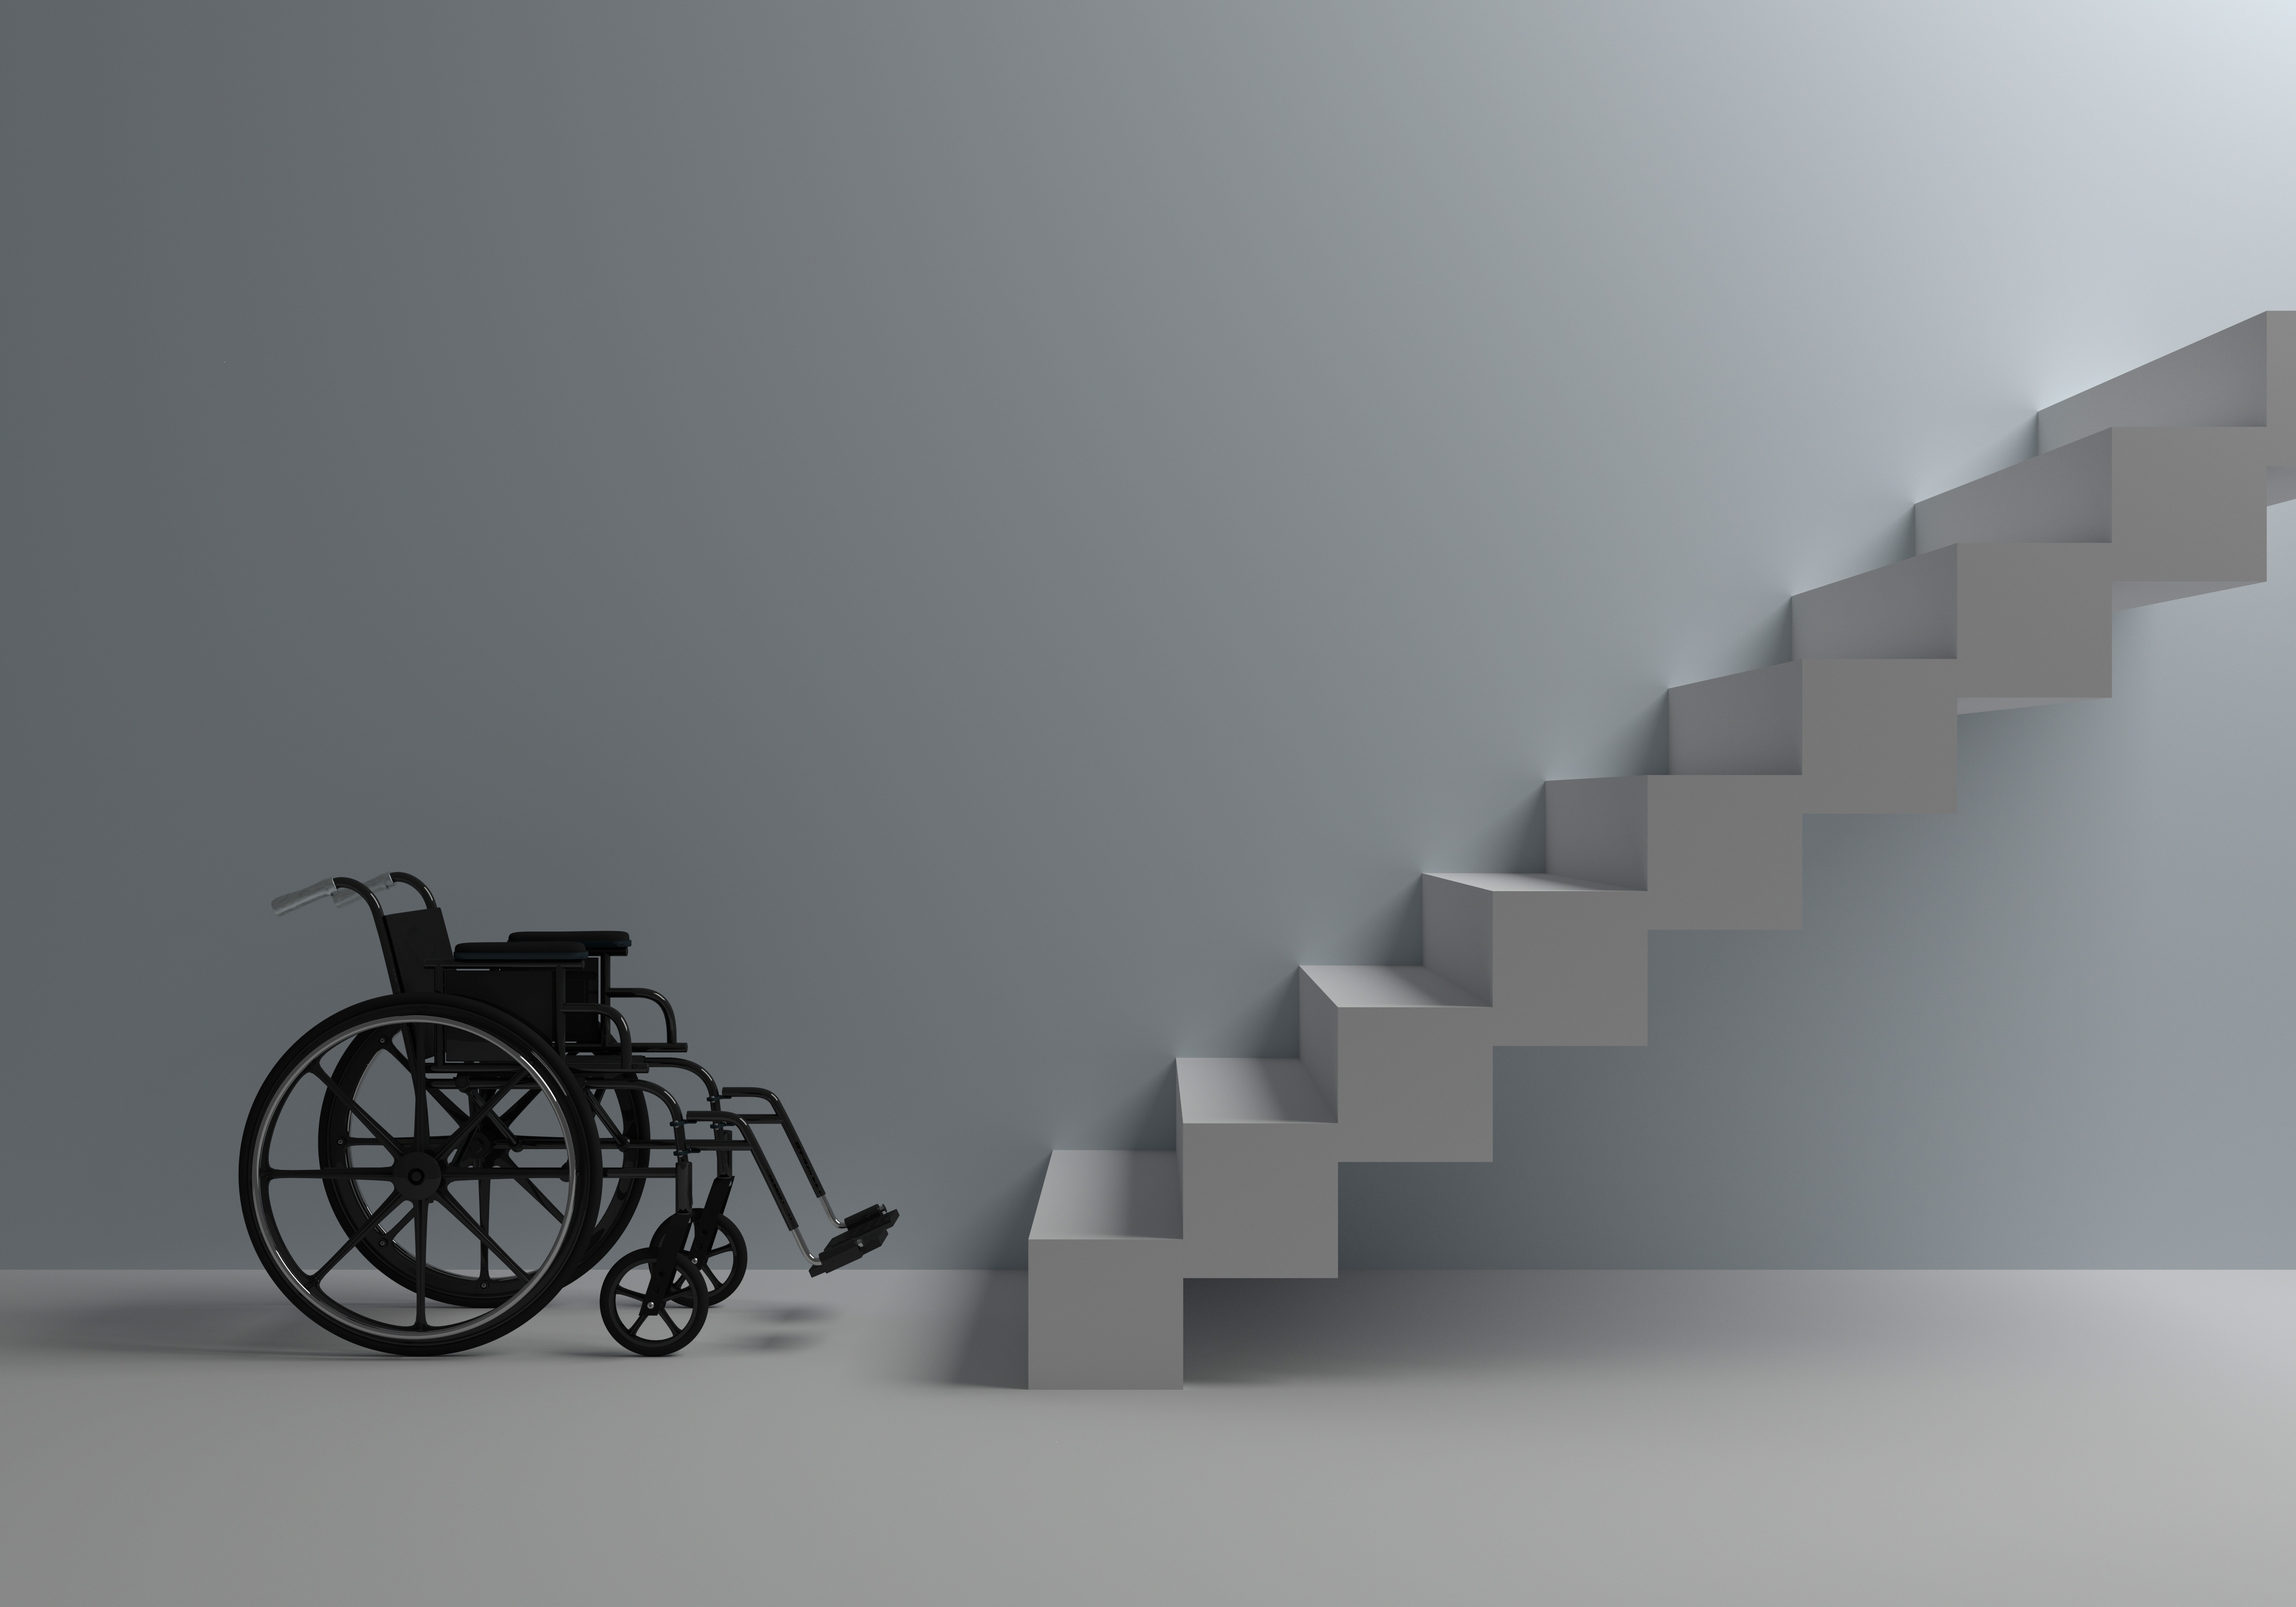 19932115 - problems of people with disabilities